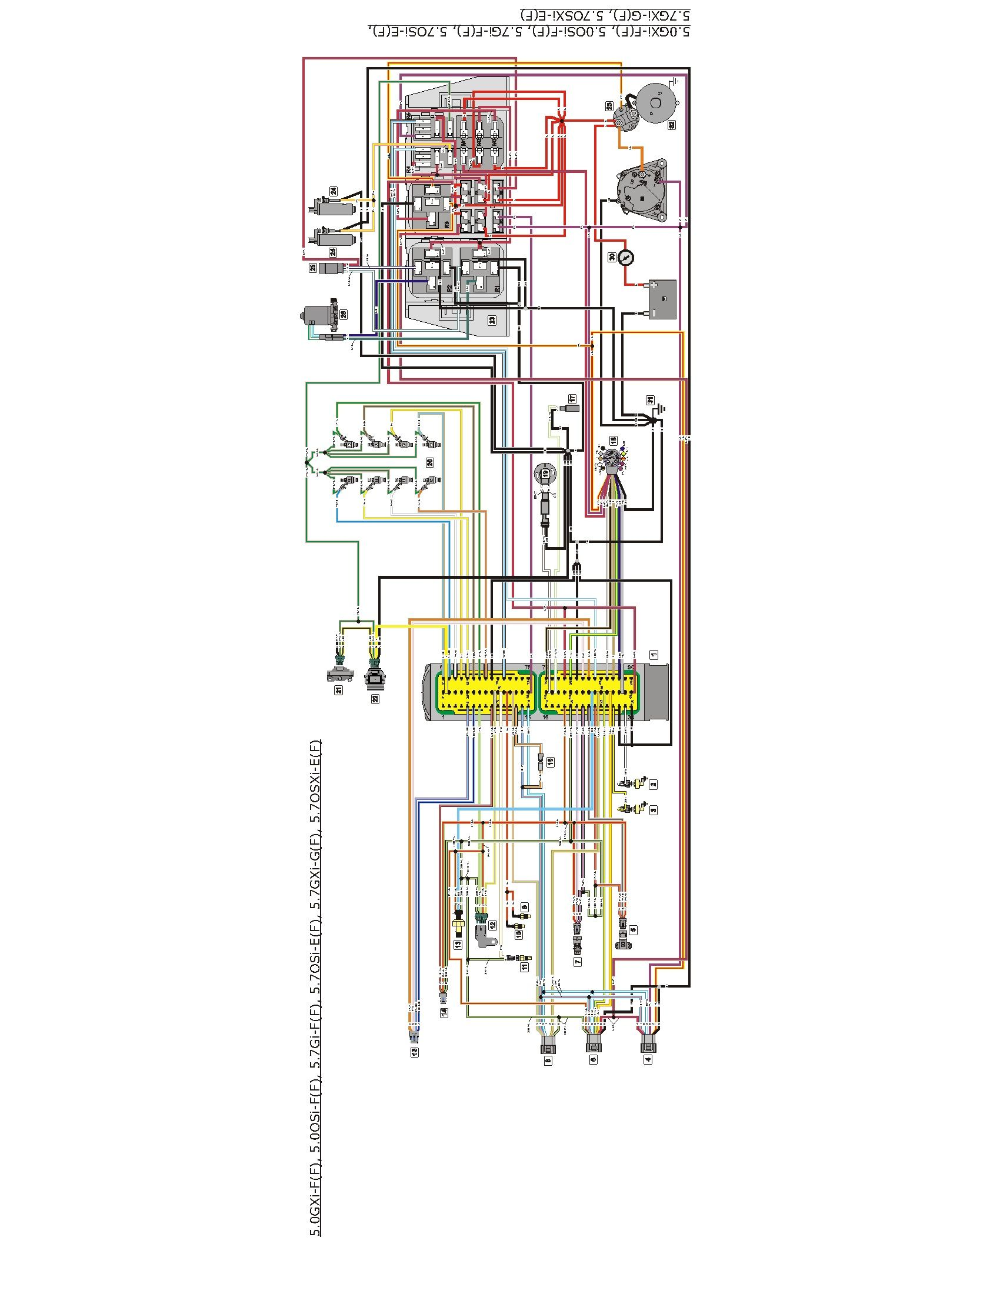 Tremendous Volvo S60 Wiring Diagram Basic Electronics Wiring Diagram Wiring  101 Tronsgresihahutechinfo in 2021 | Volvo, Trailer light wiring, Diagram | Volvo S60 Wiring Diagram |  | Pinterest